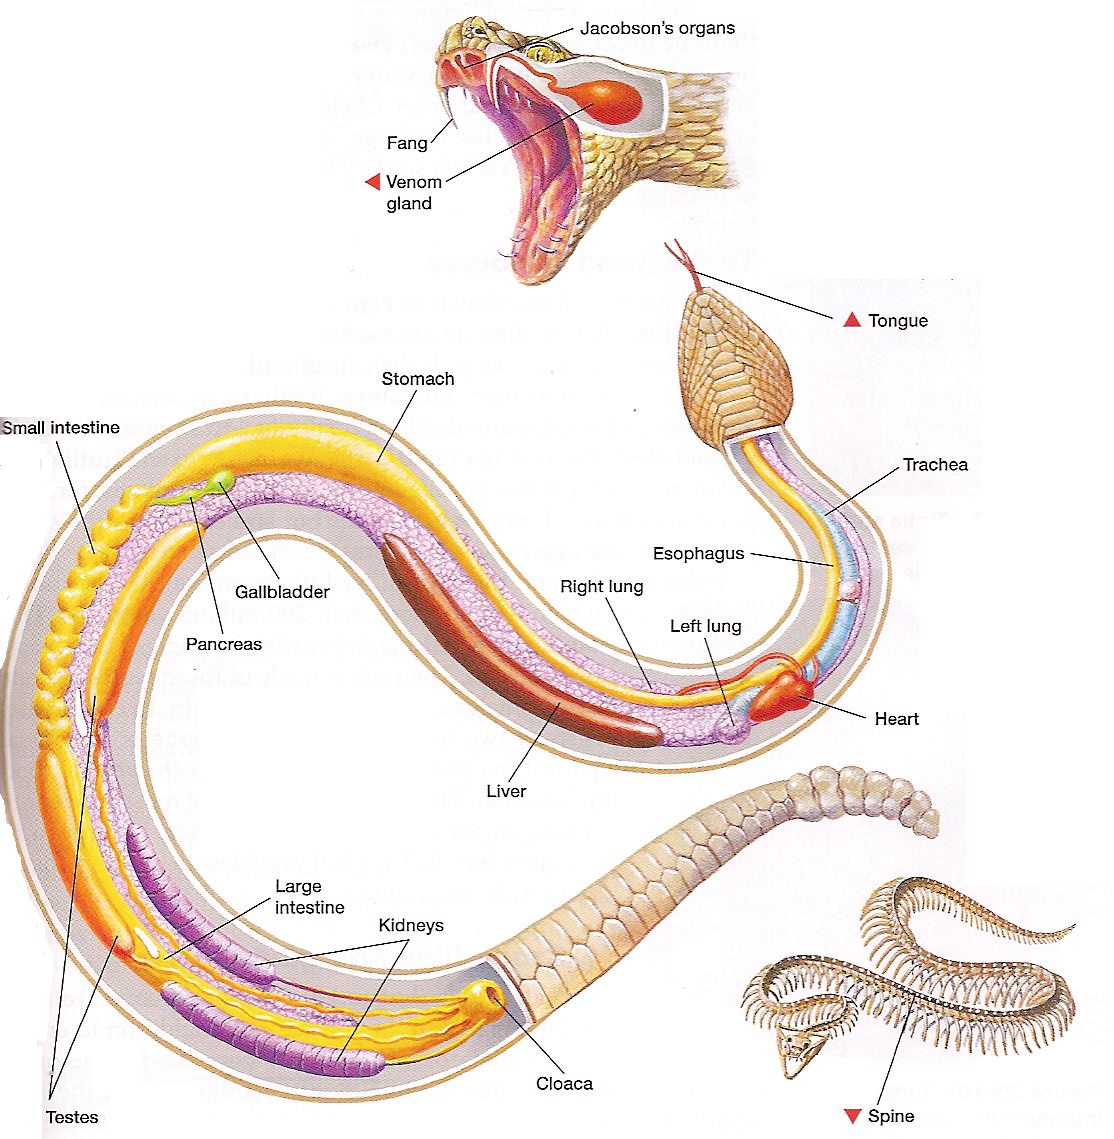 Snake Anatomy Diagram Zama Carburetor Fuel Line And Physiology Pet Education The Of Snakes Differs From That Mammals Especially In Areas Senses